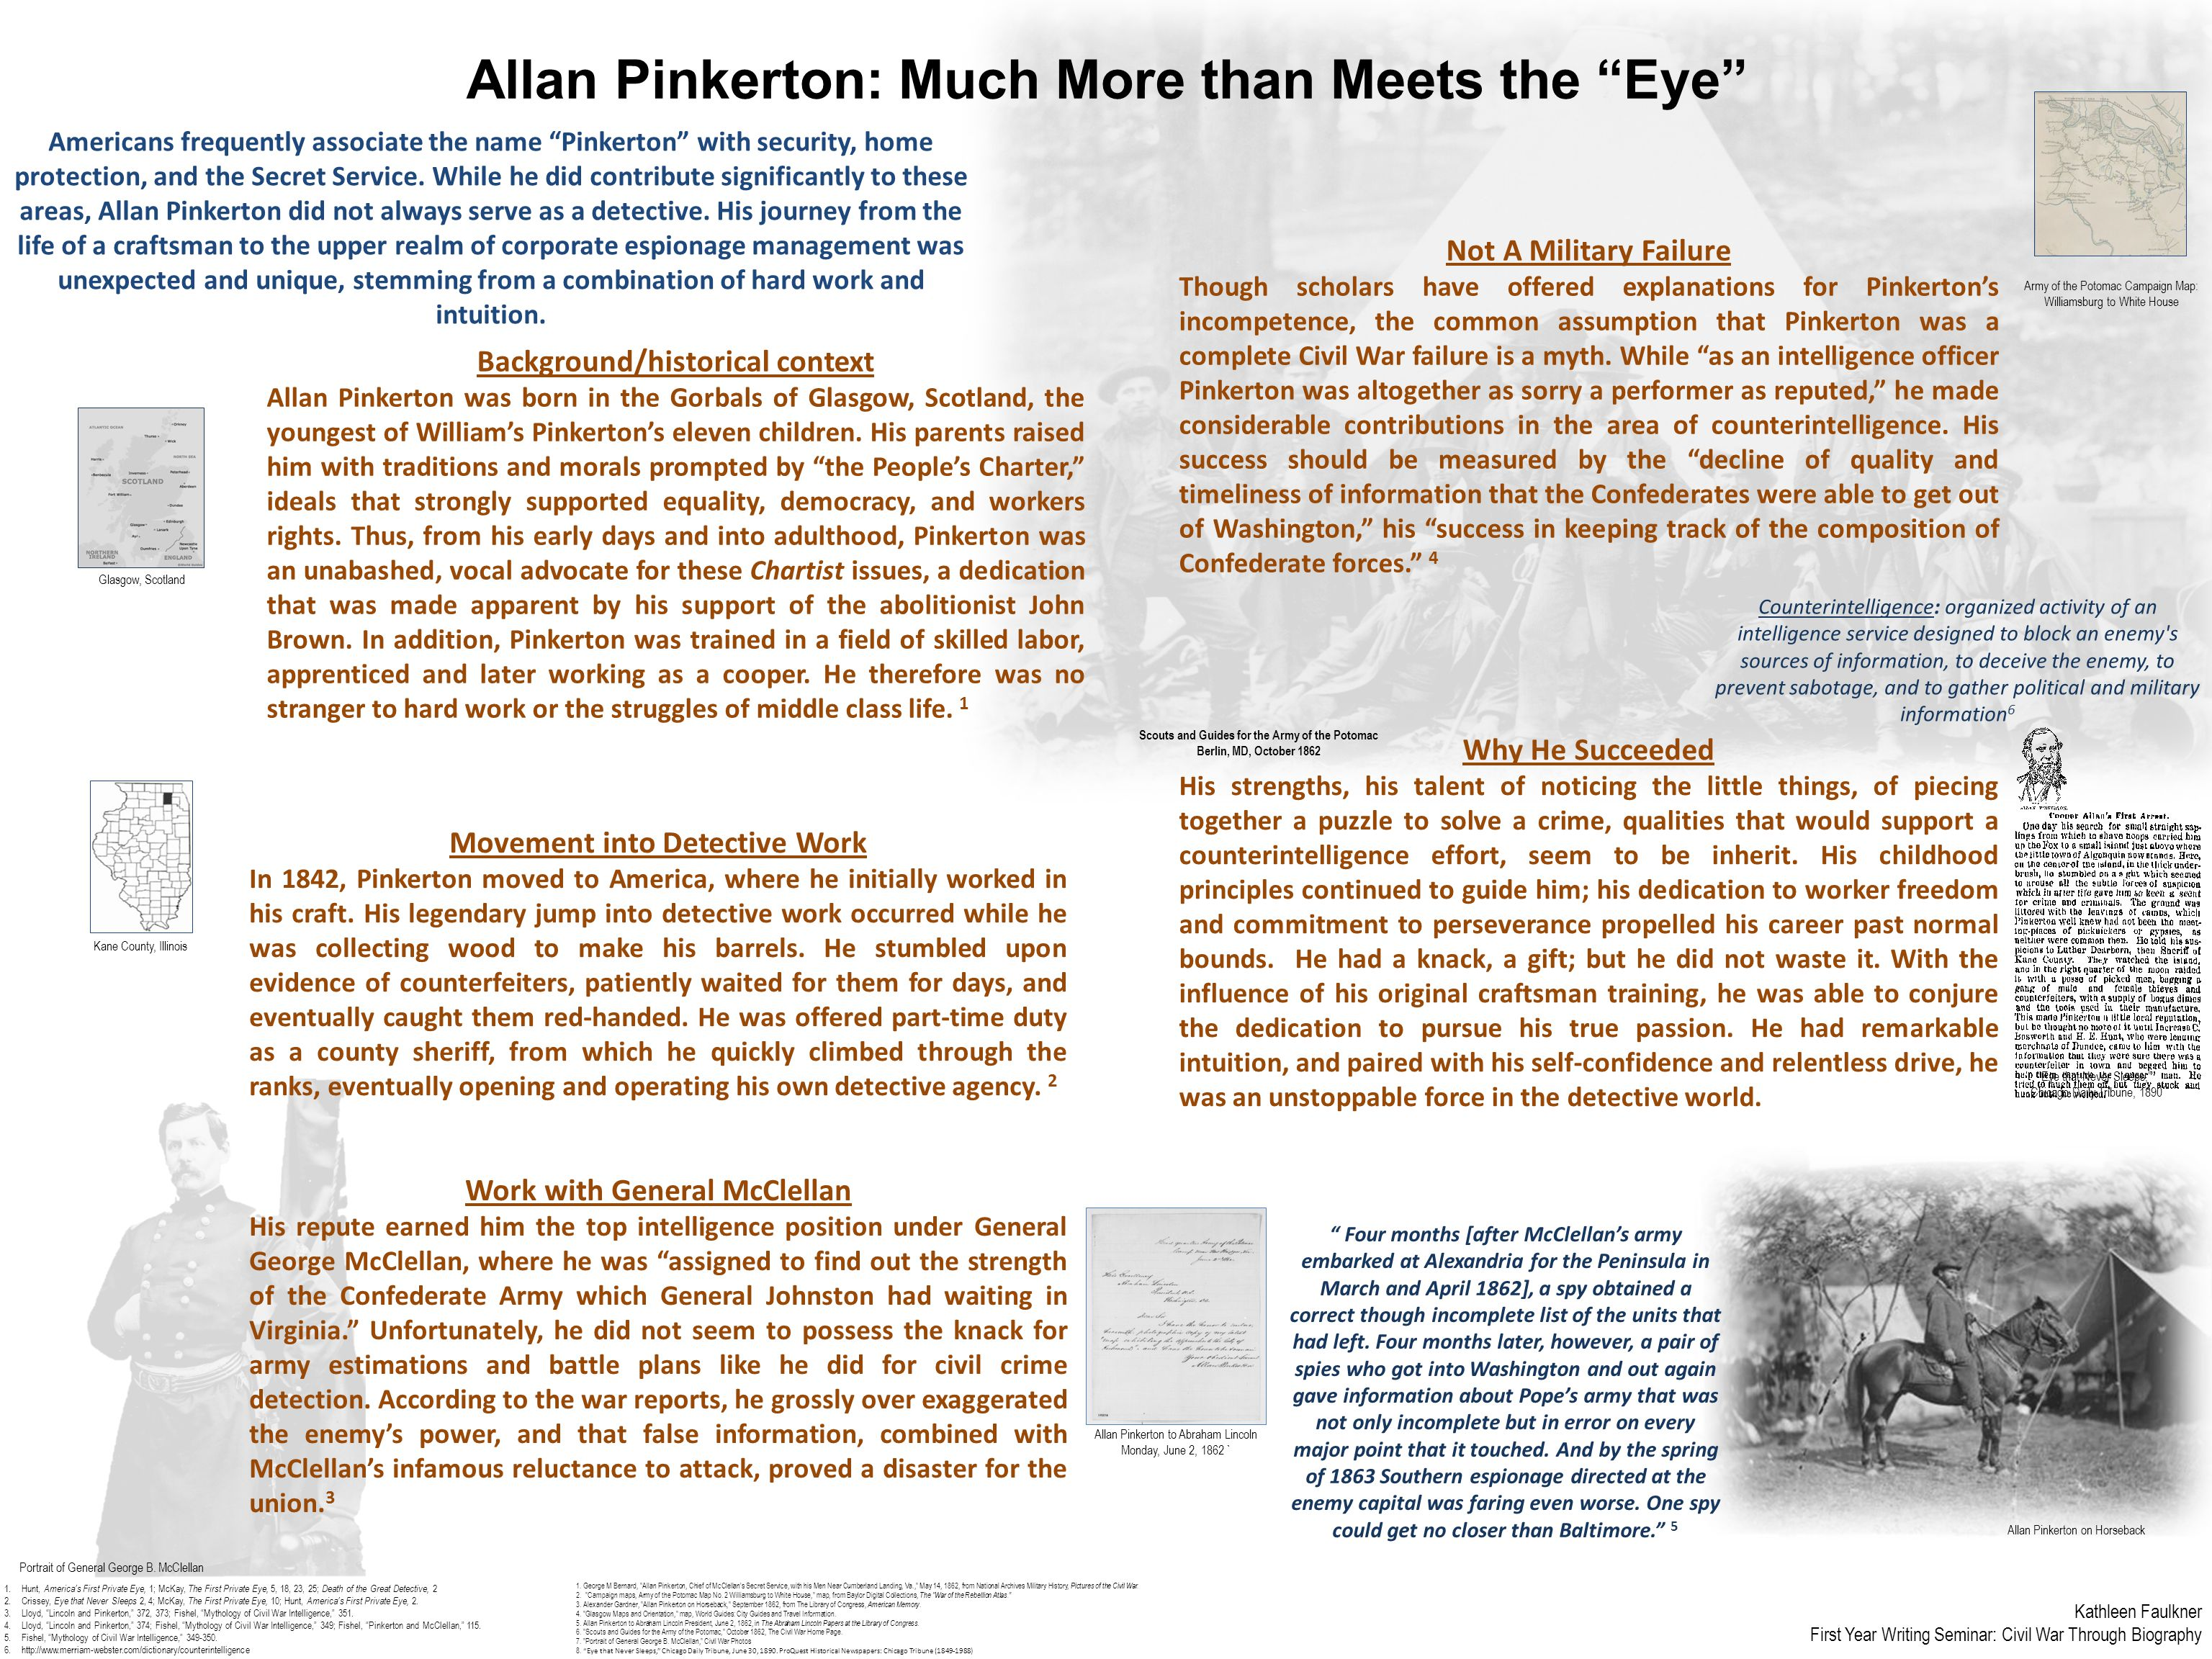 Allan Pinkerton: Much More than Meets the Eye Americans frequently associate the name Pinkerton with security, home protection, and the Secret Service.